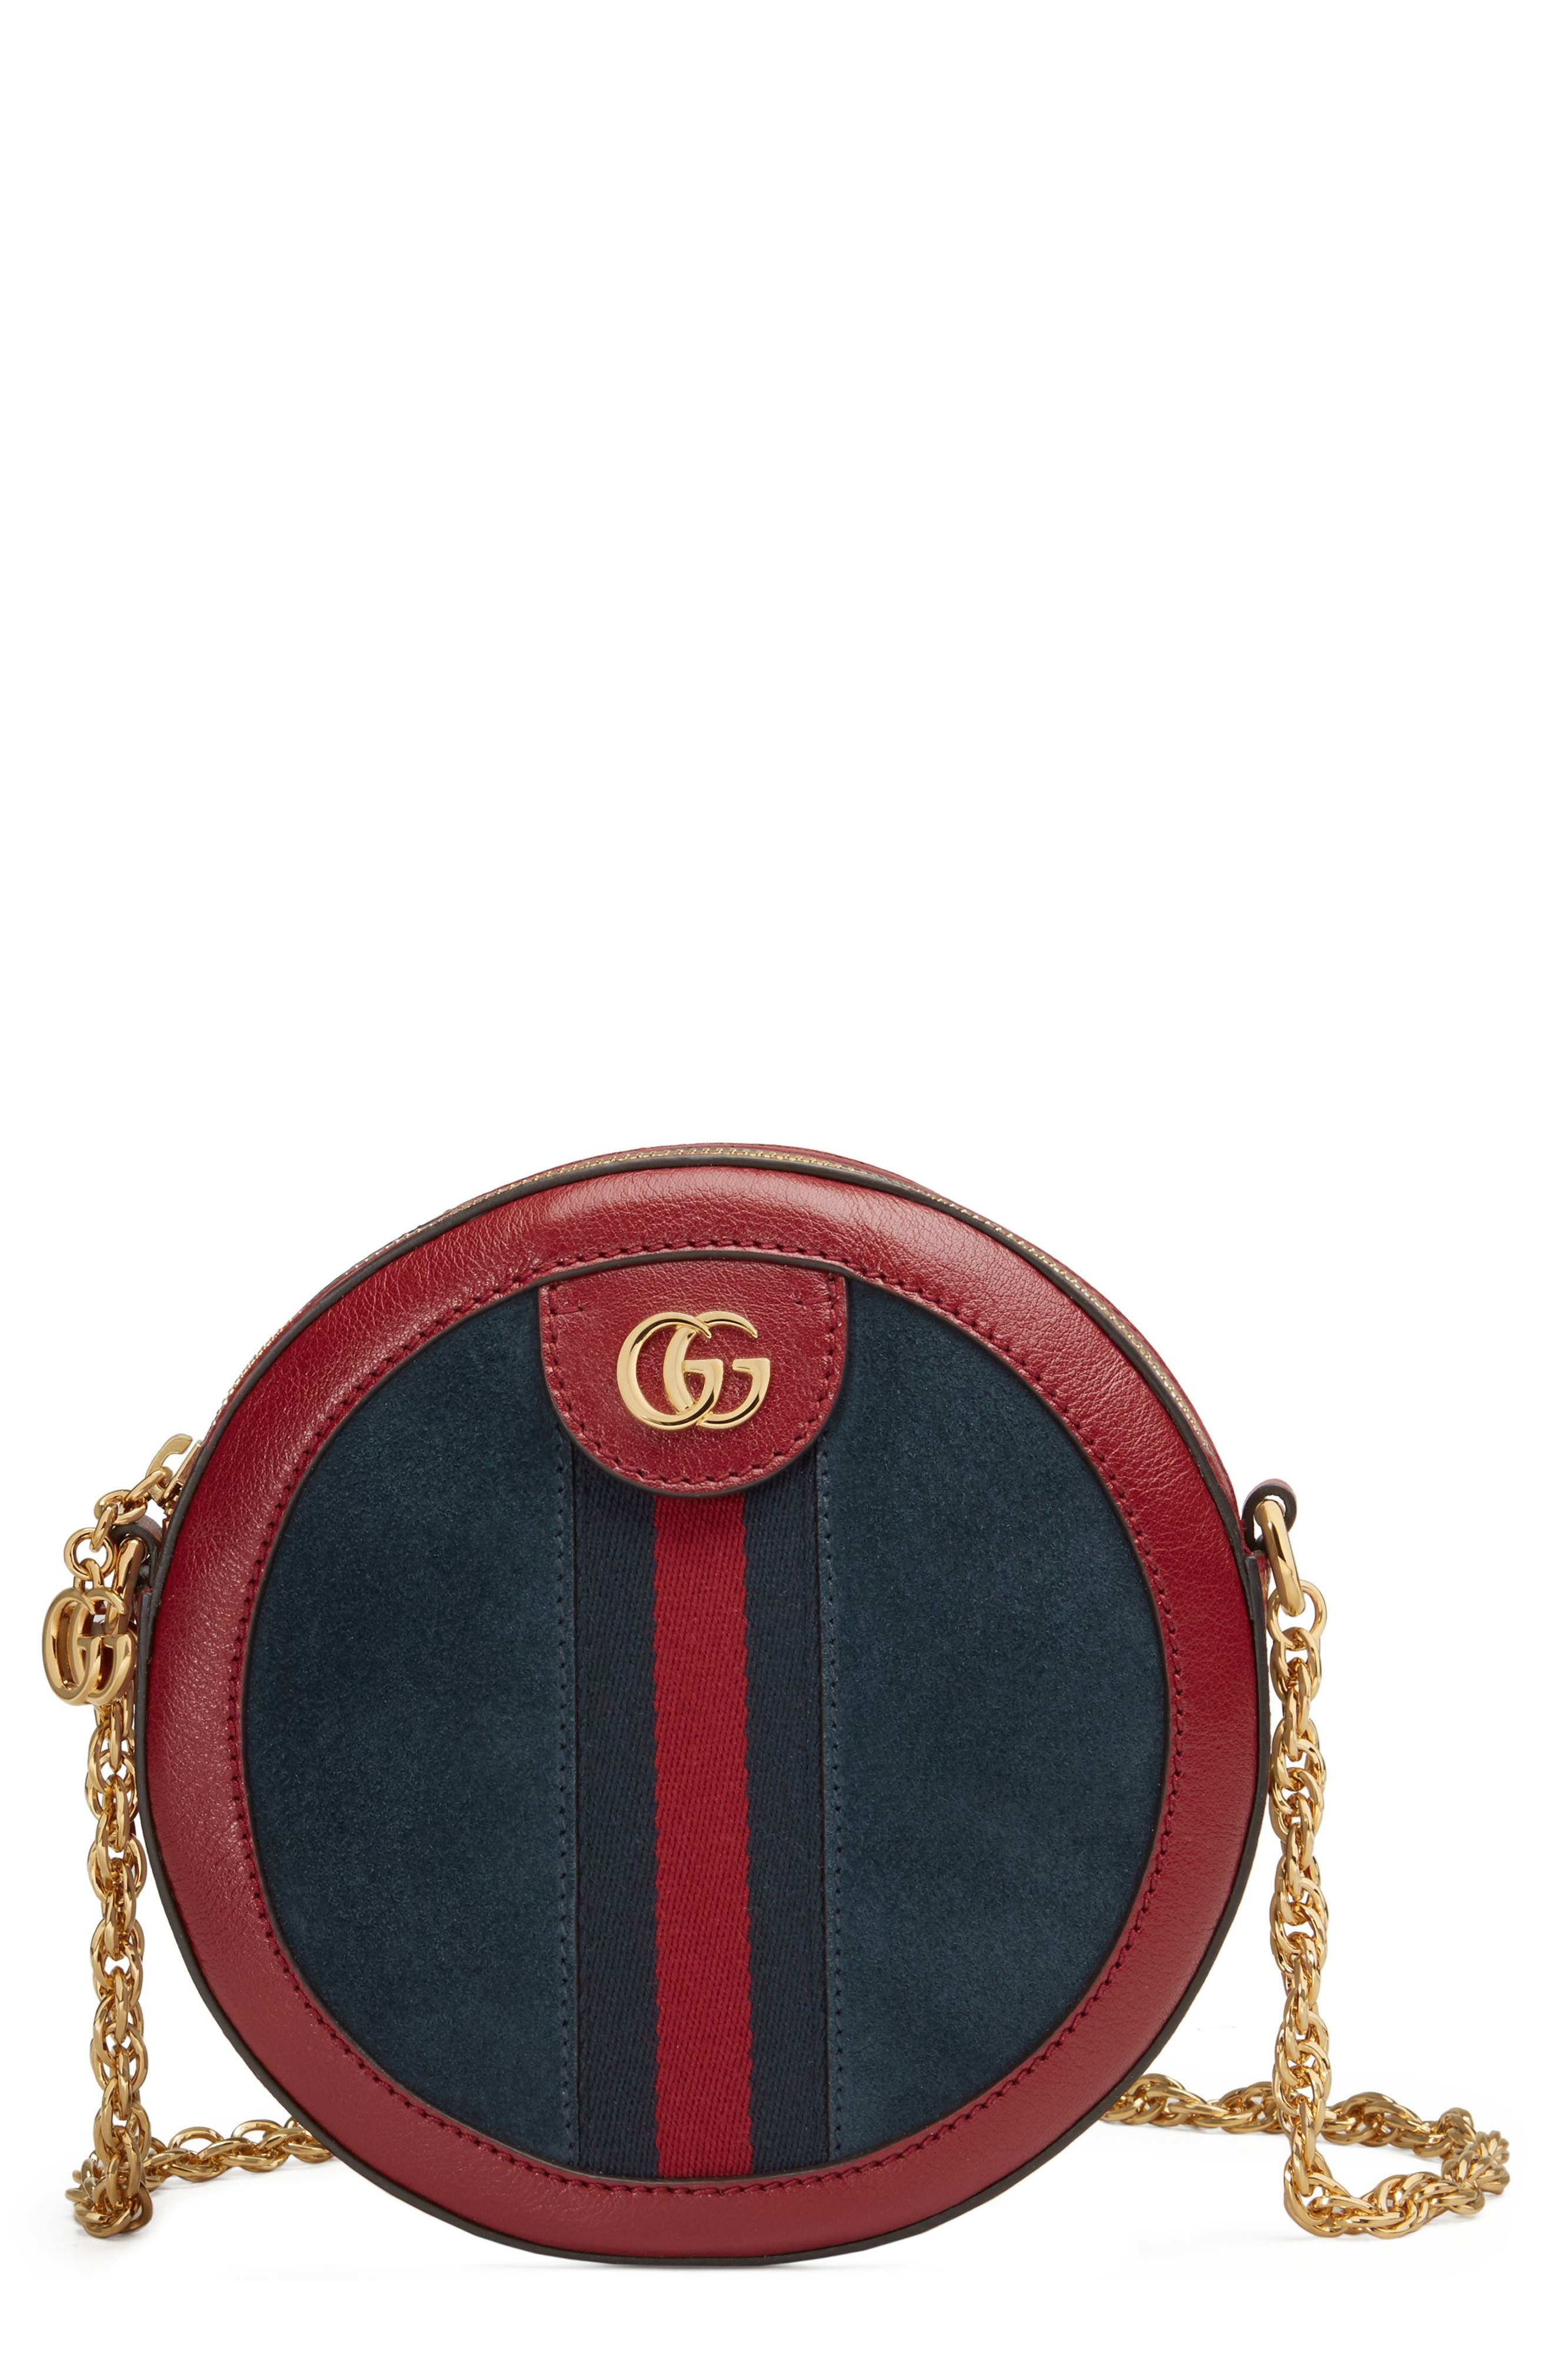 Ophidia Small Suede & Leather Circle Crossbody Bag,                         Main,                         color, NEW BLU/ ROMANTIC CERISE